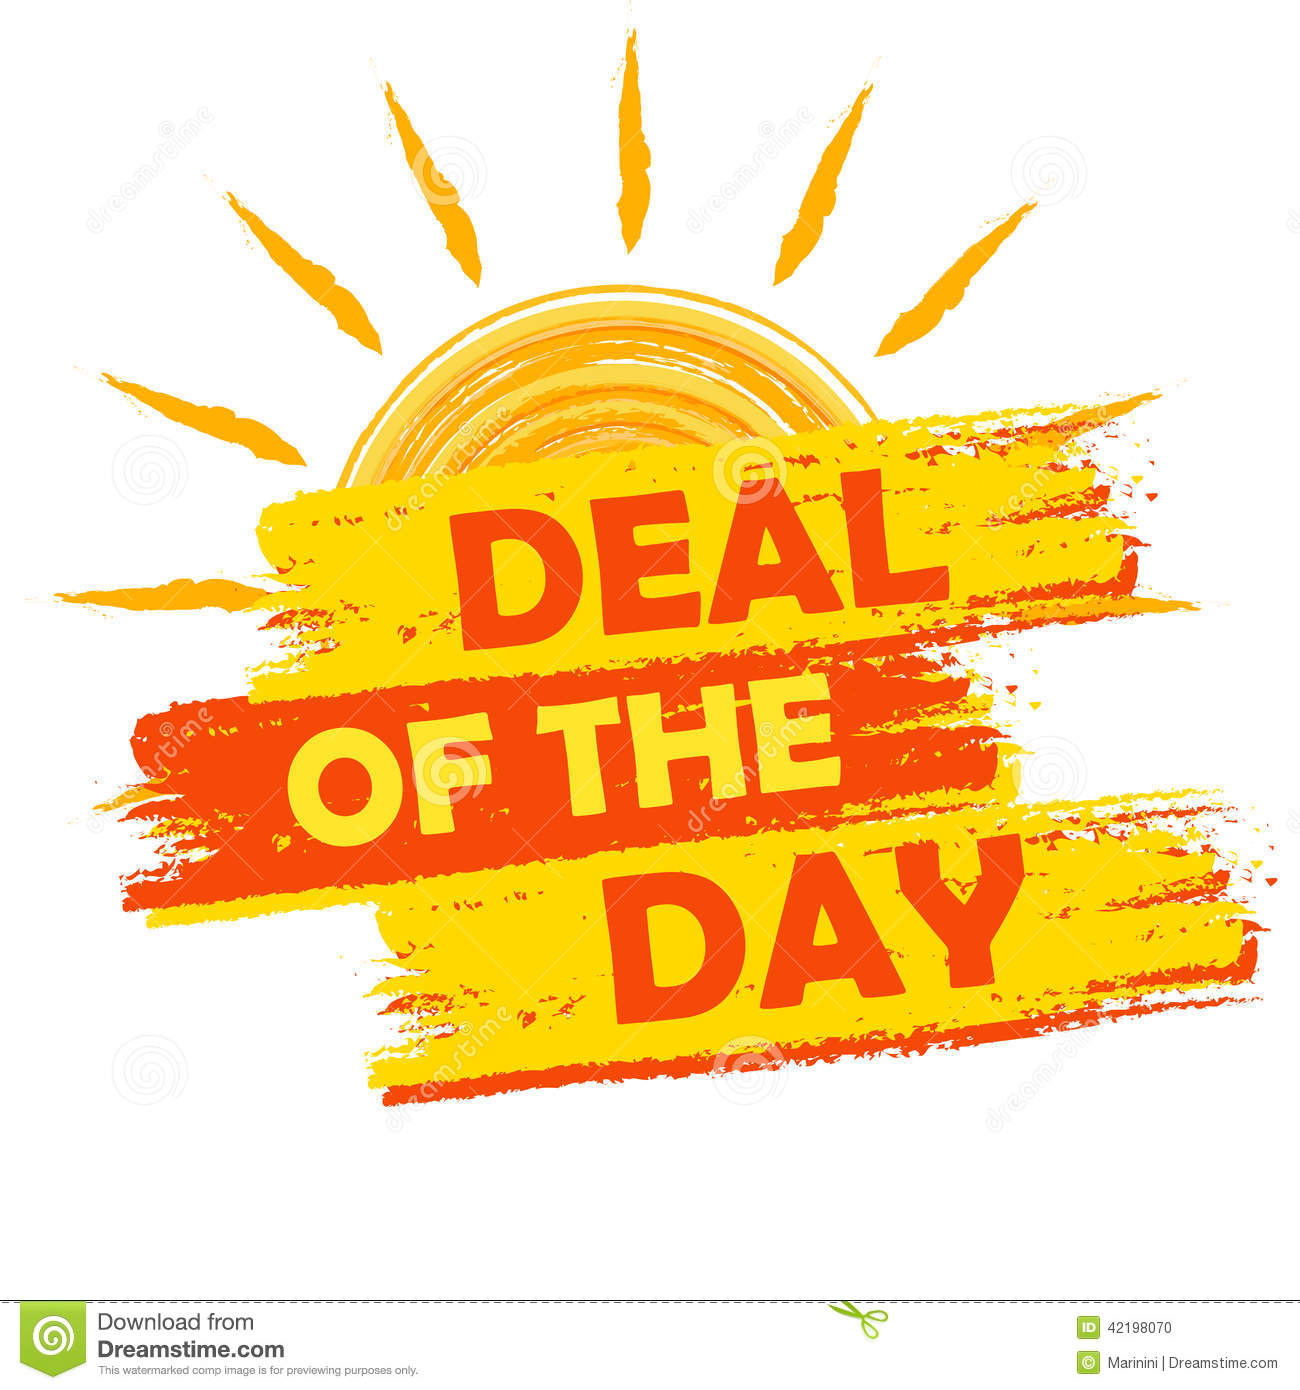 Summer deal of the day banner text in yellow and orange drawn label